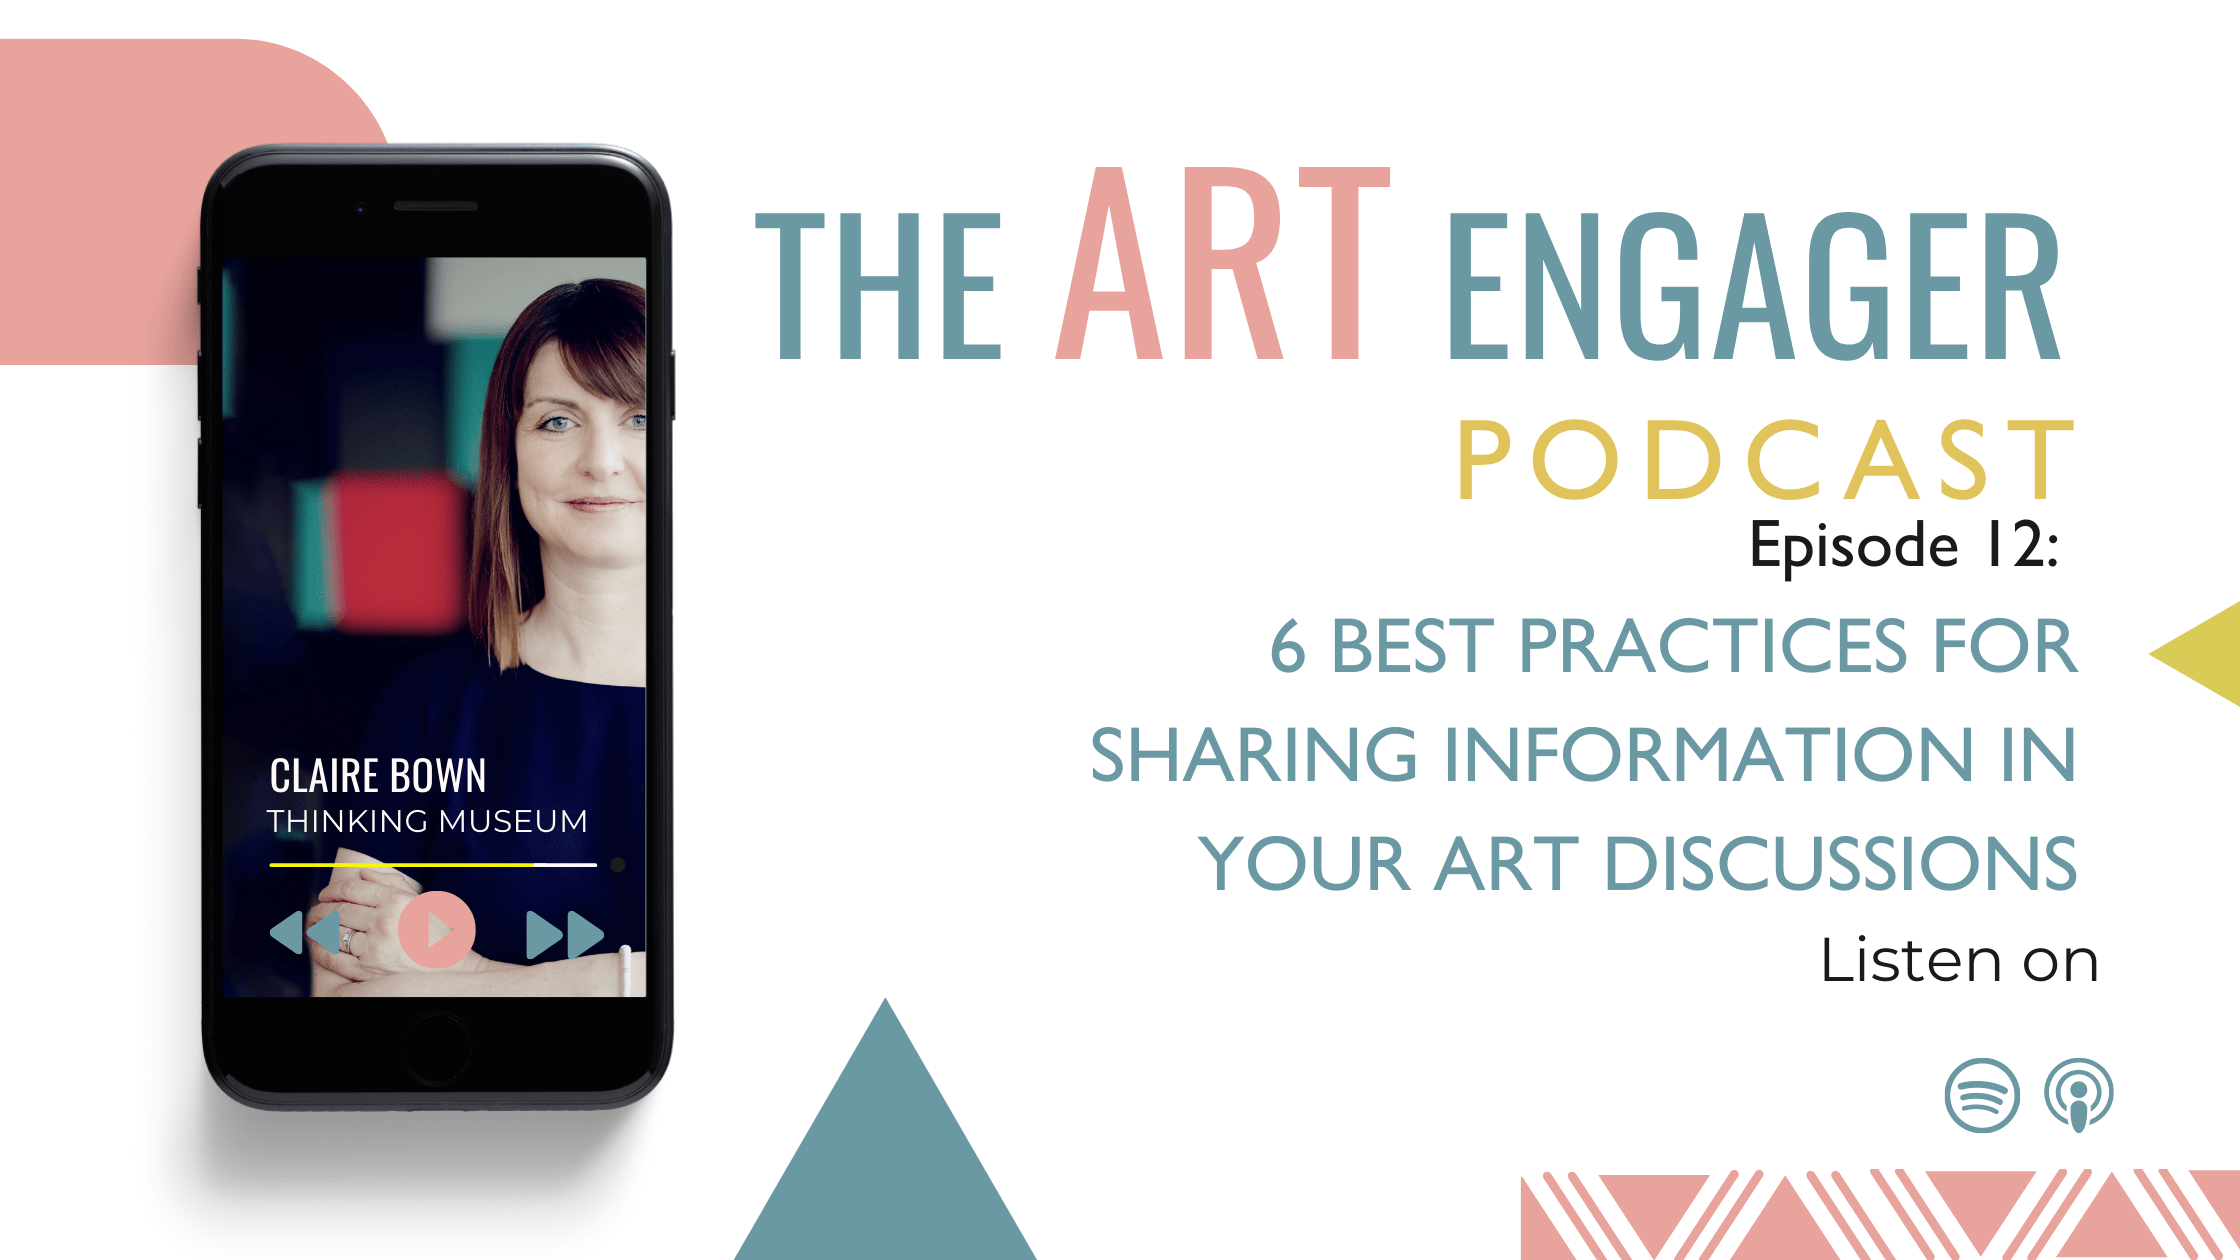 6 BEST PRACTICES FOR SHARING INFORMATION IN YOUR ART DISCUSSIONS